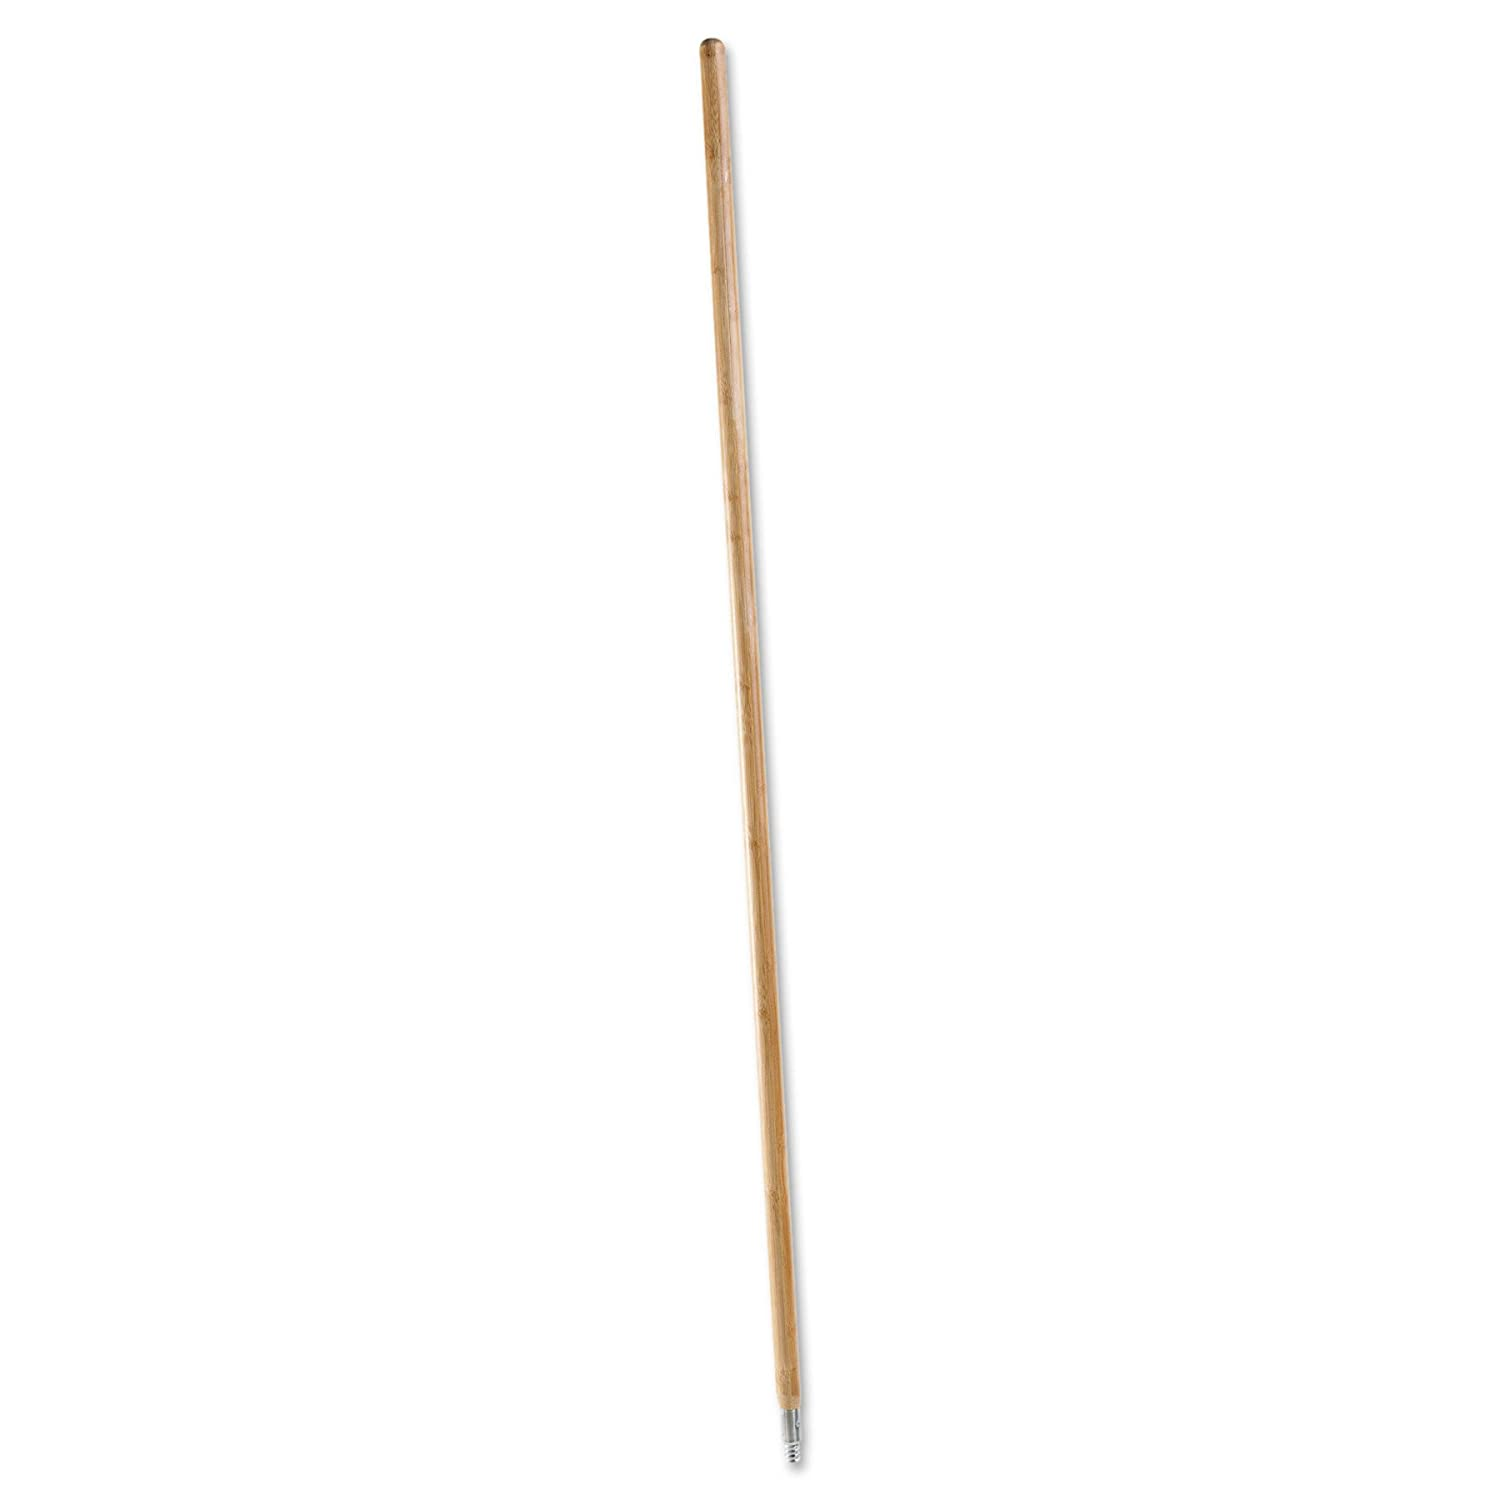 Boardwalk 138 Metal Tip Threaded Hardwood Broom Handle, 1-1/8